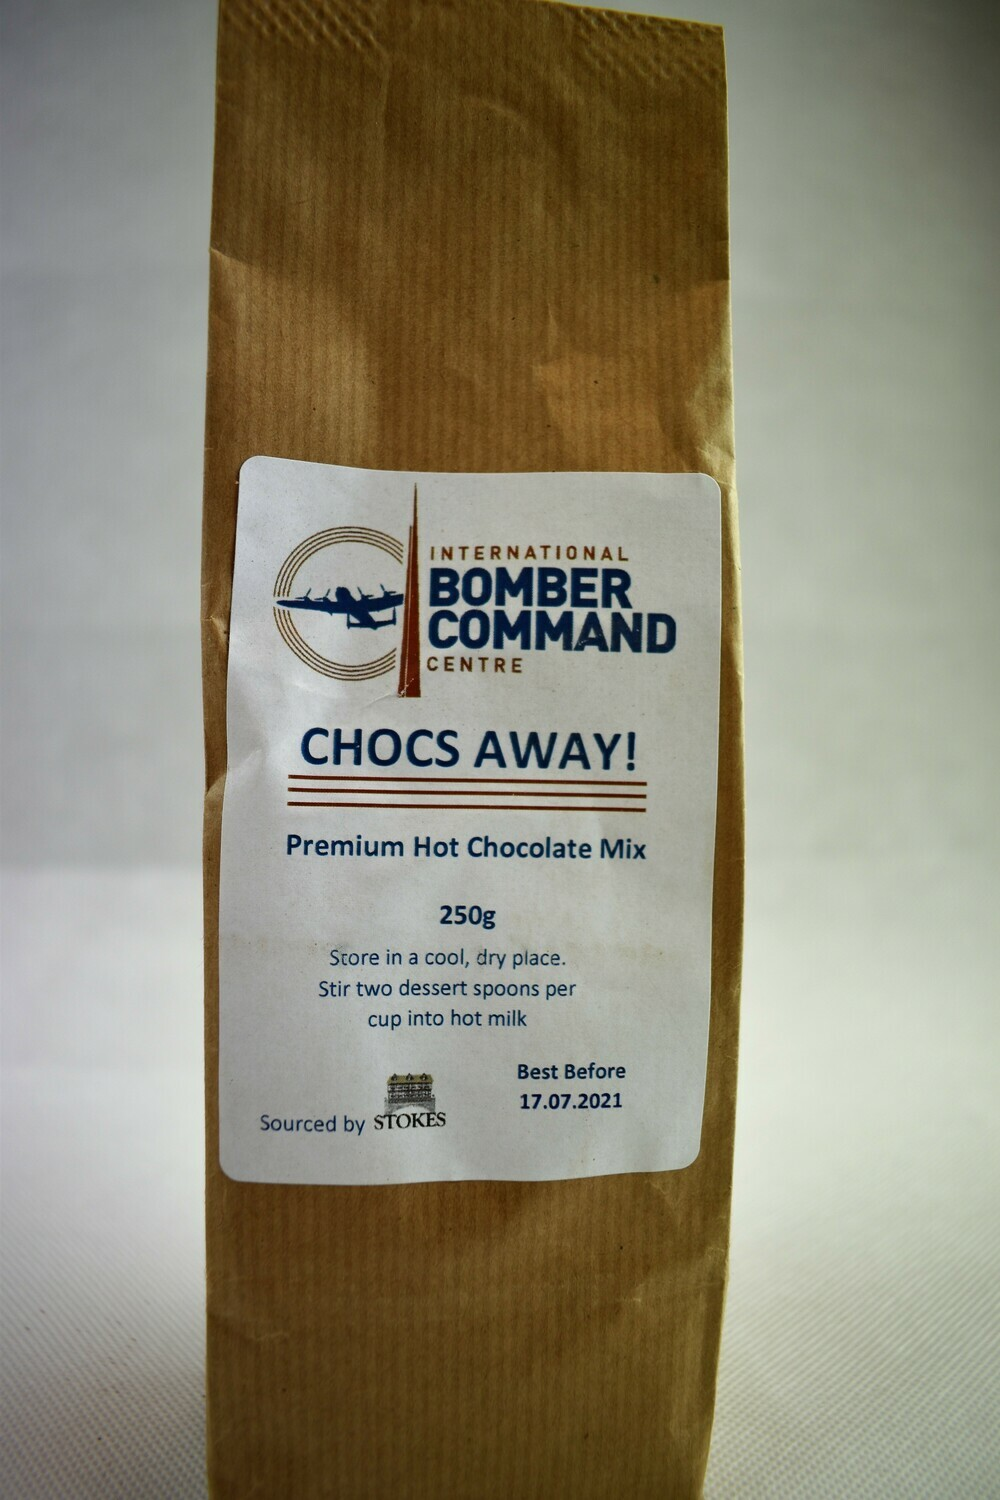 'Chocs Away' Premium Hot Chocolate Mix